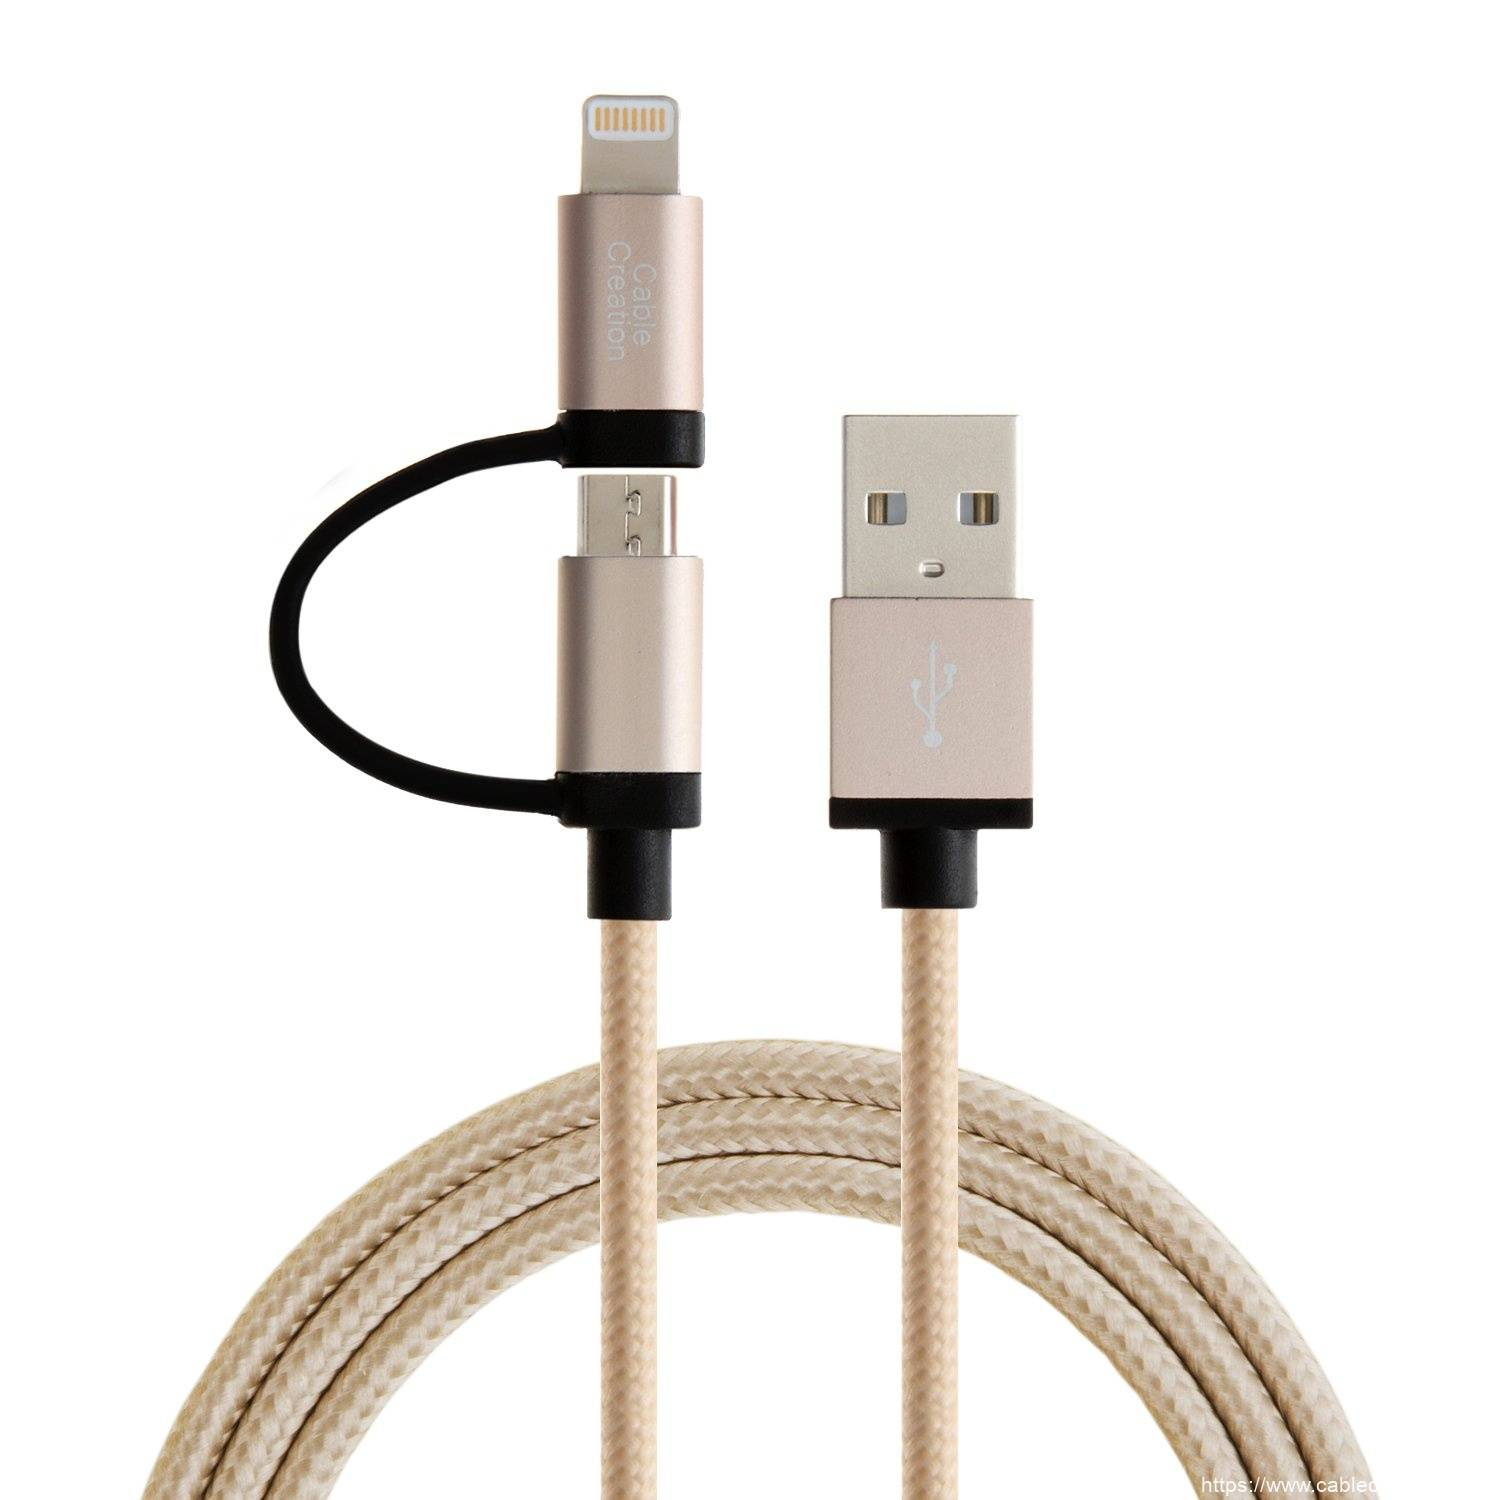 Cheap price Apple Data Cable - 2-in-1 Lightning and Micro USB Cable 4Feet / 1.2Meters, # CC0048 – CableCreation